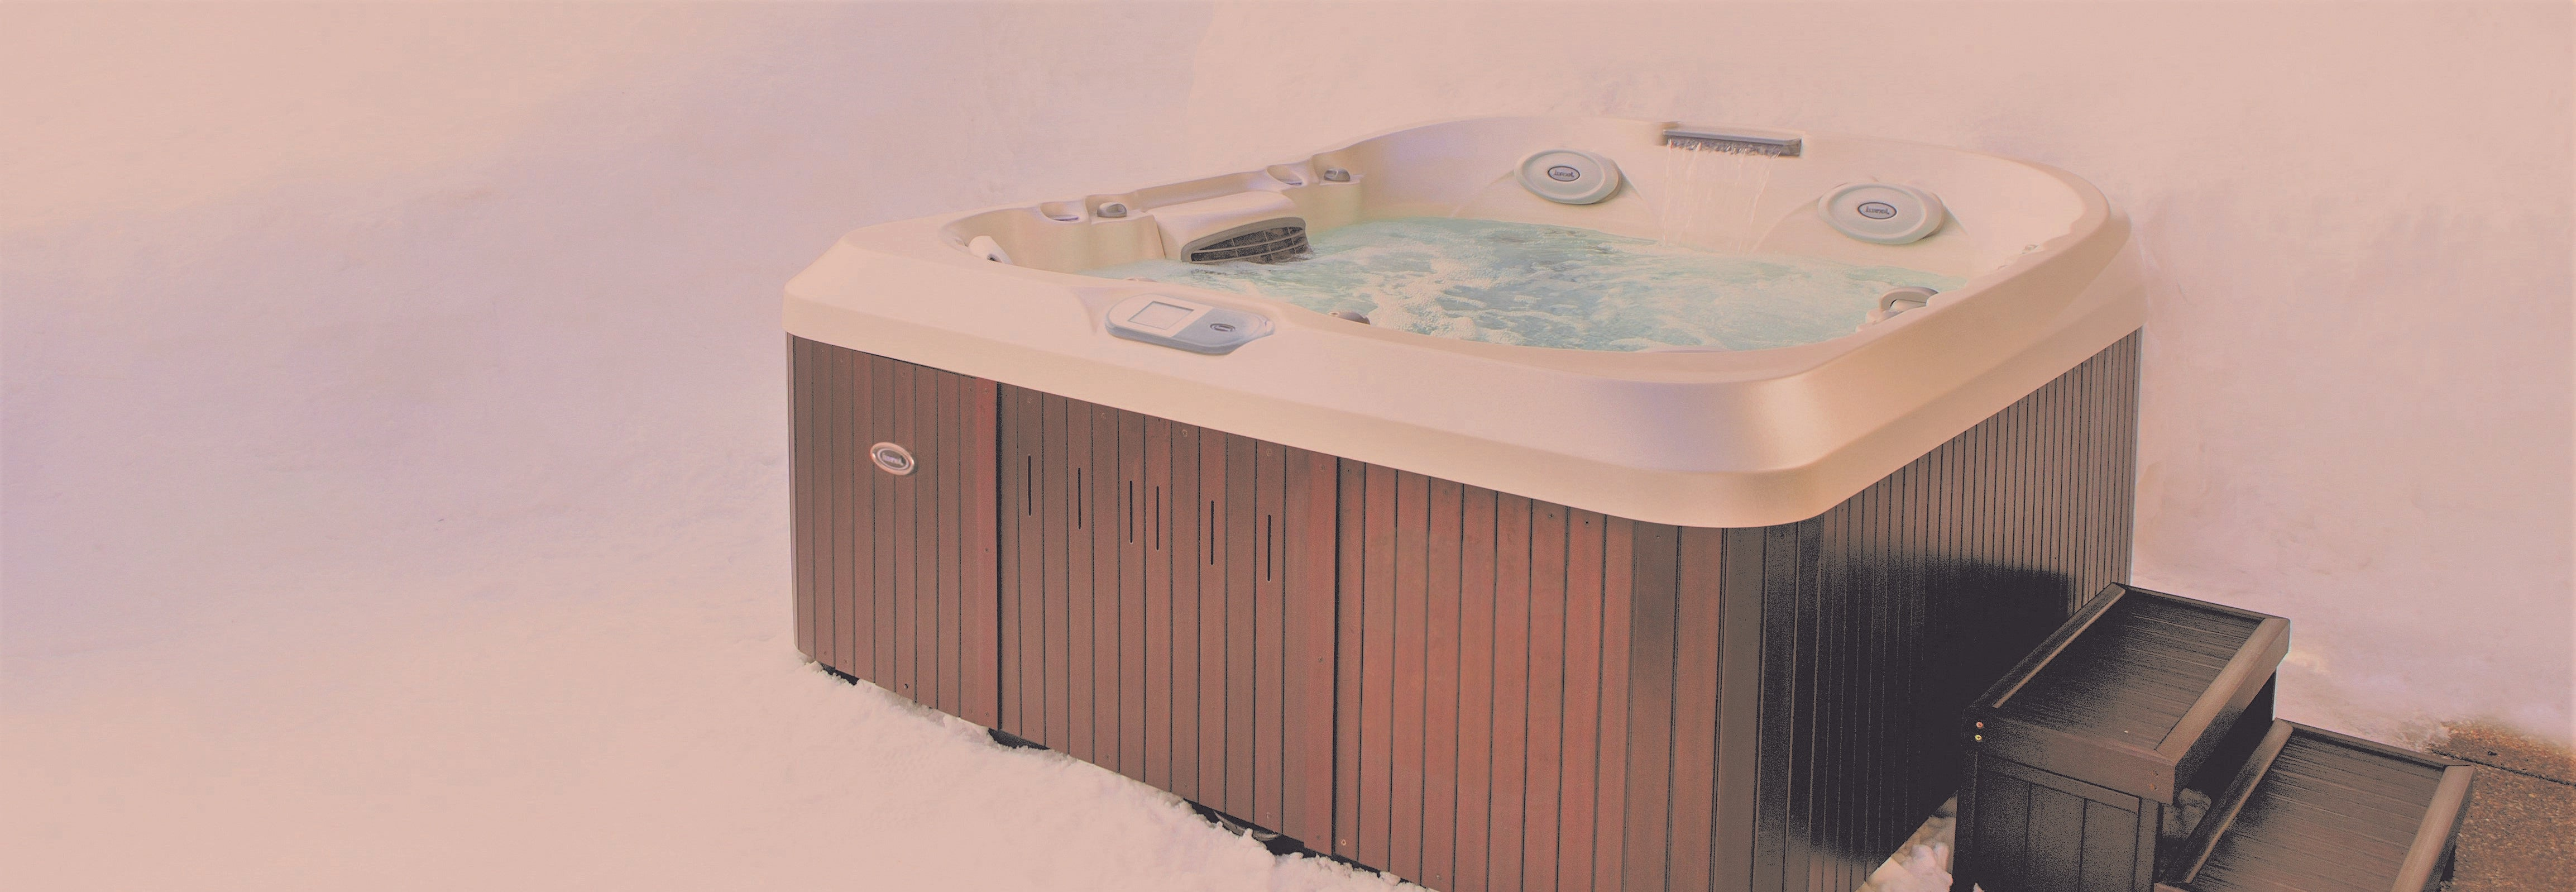 Find your perfect Hot Tub!